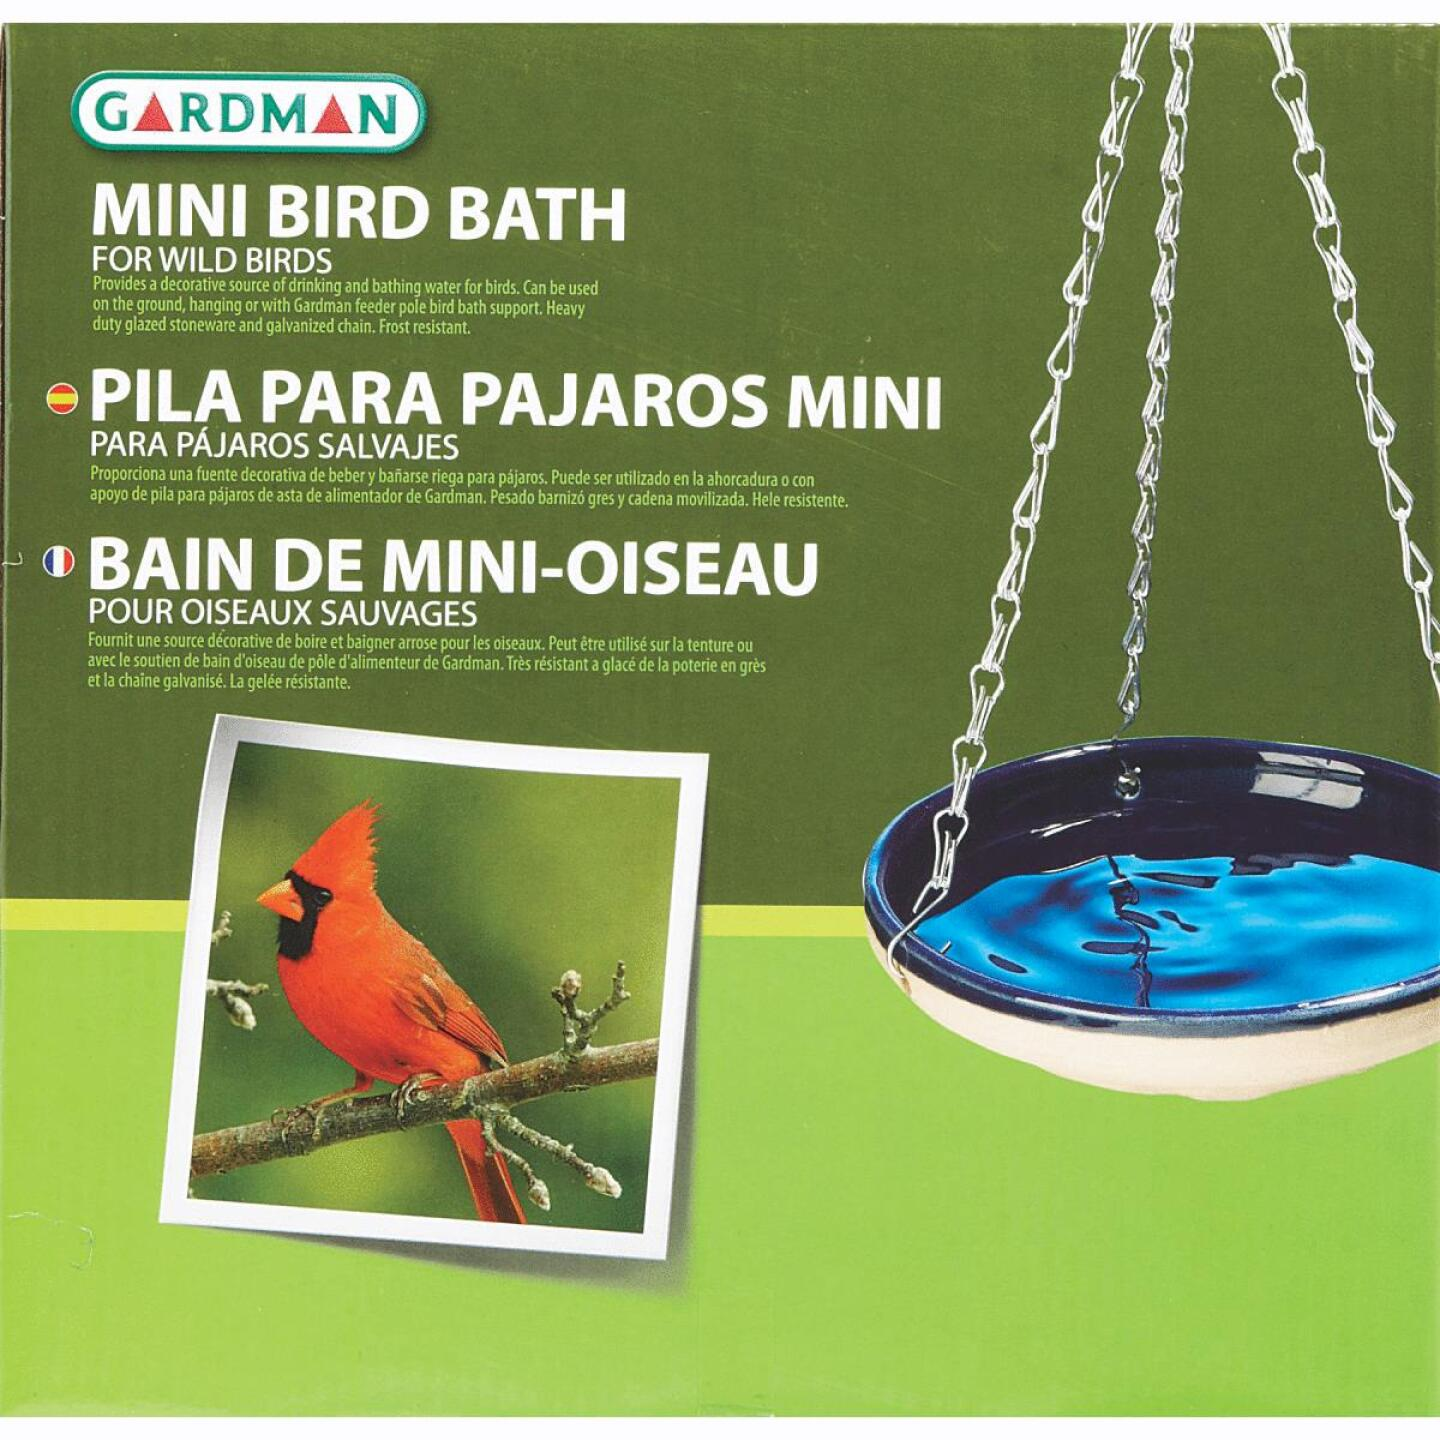 Gardman Resin Blue Bird Bath Image 2